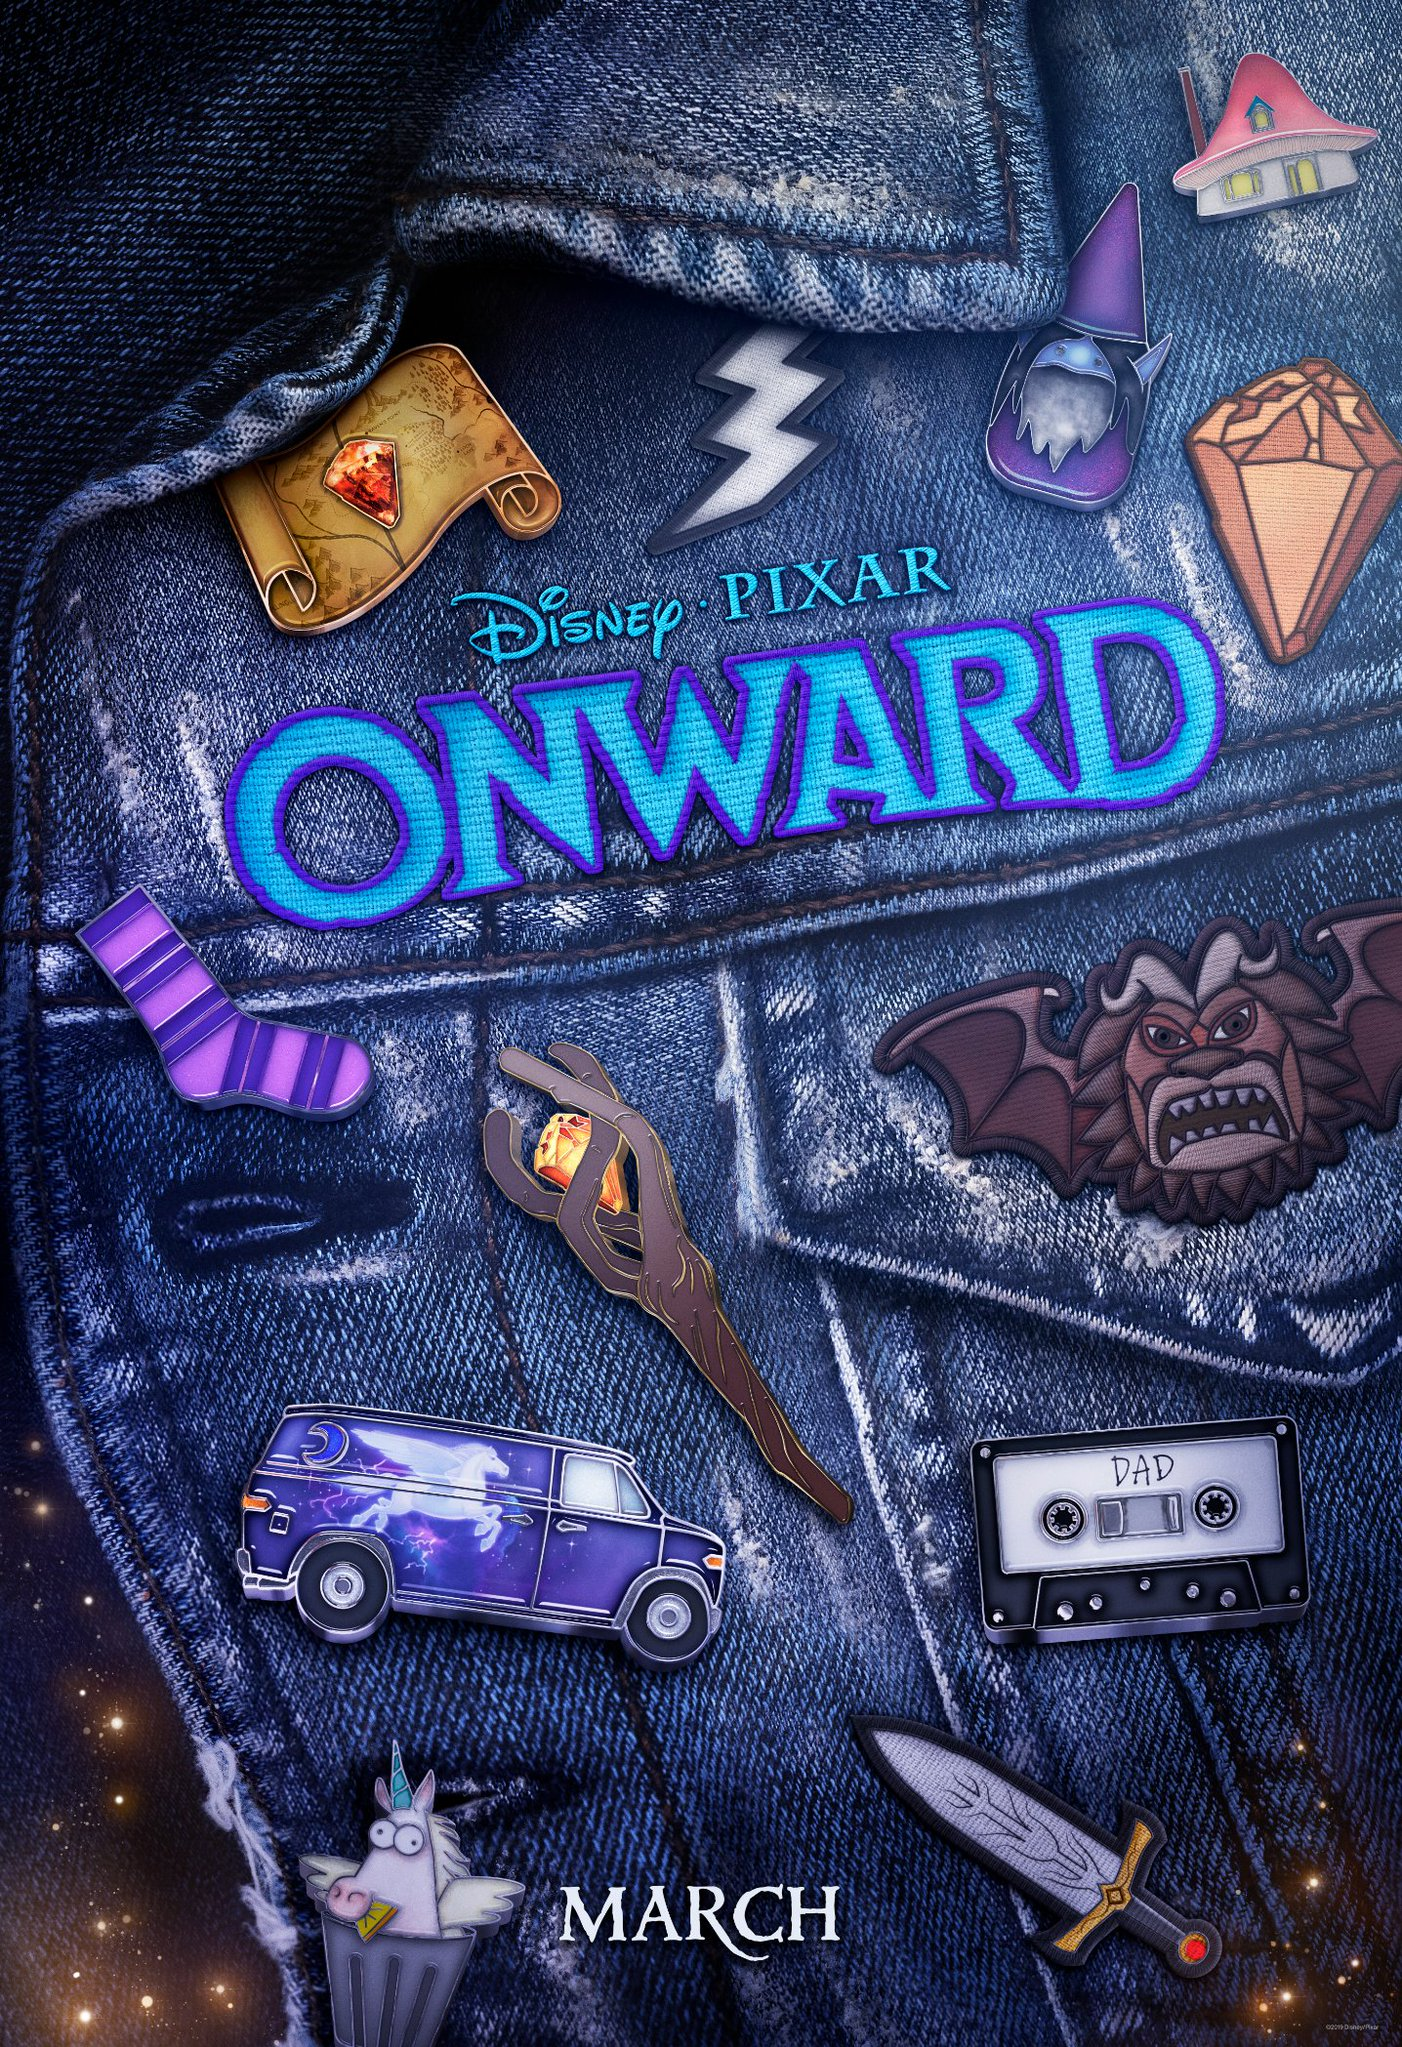 Onward poster given away to D23 Expo attendees